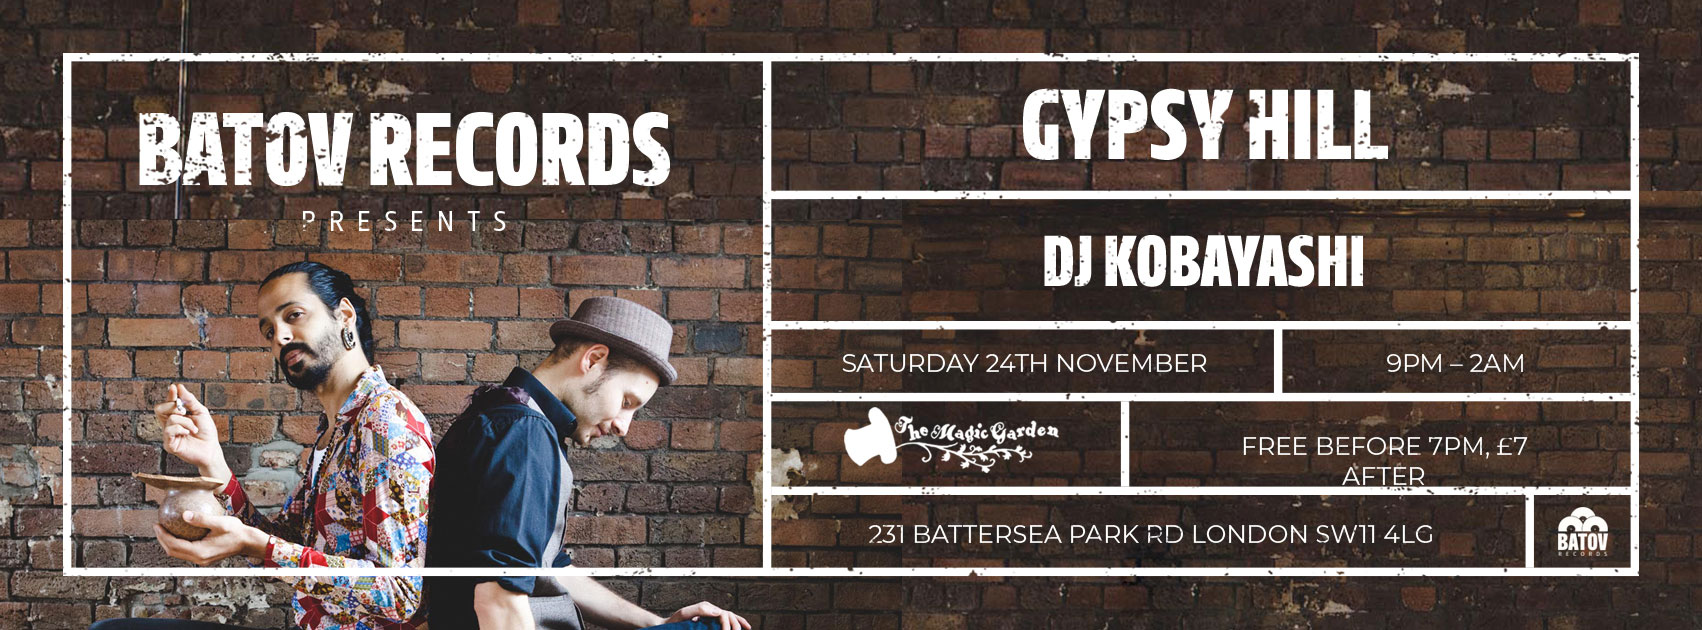 Batov Records Presents: Gypsy Hill and DJ Kobayashi 3